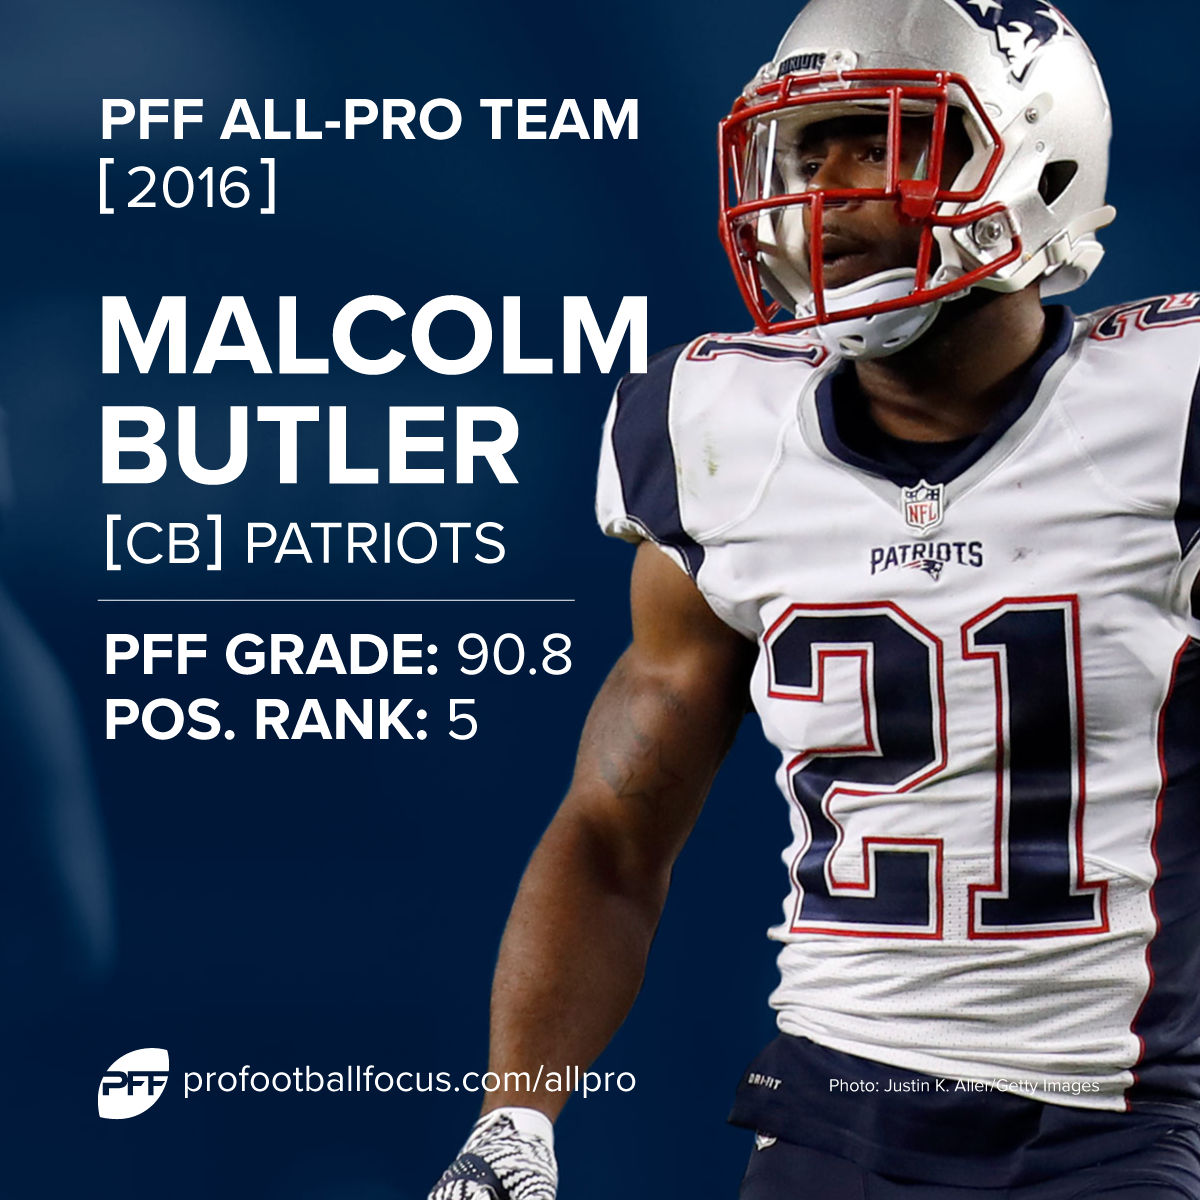 Malcolm Butler 2016 All-Pro